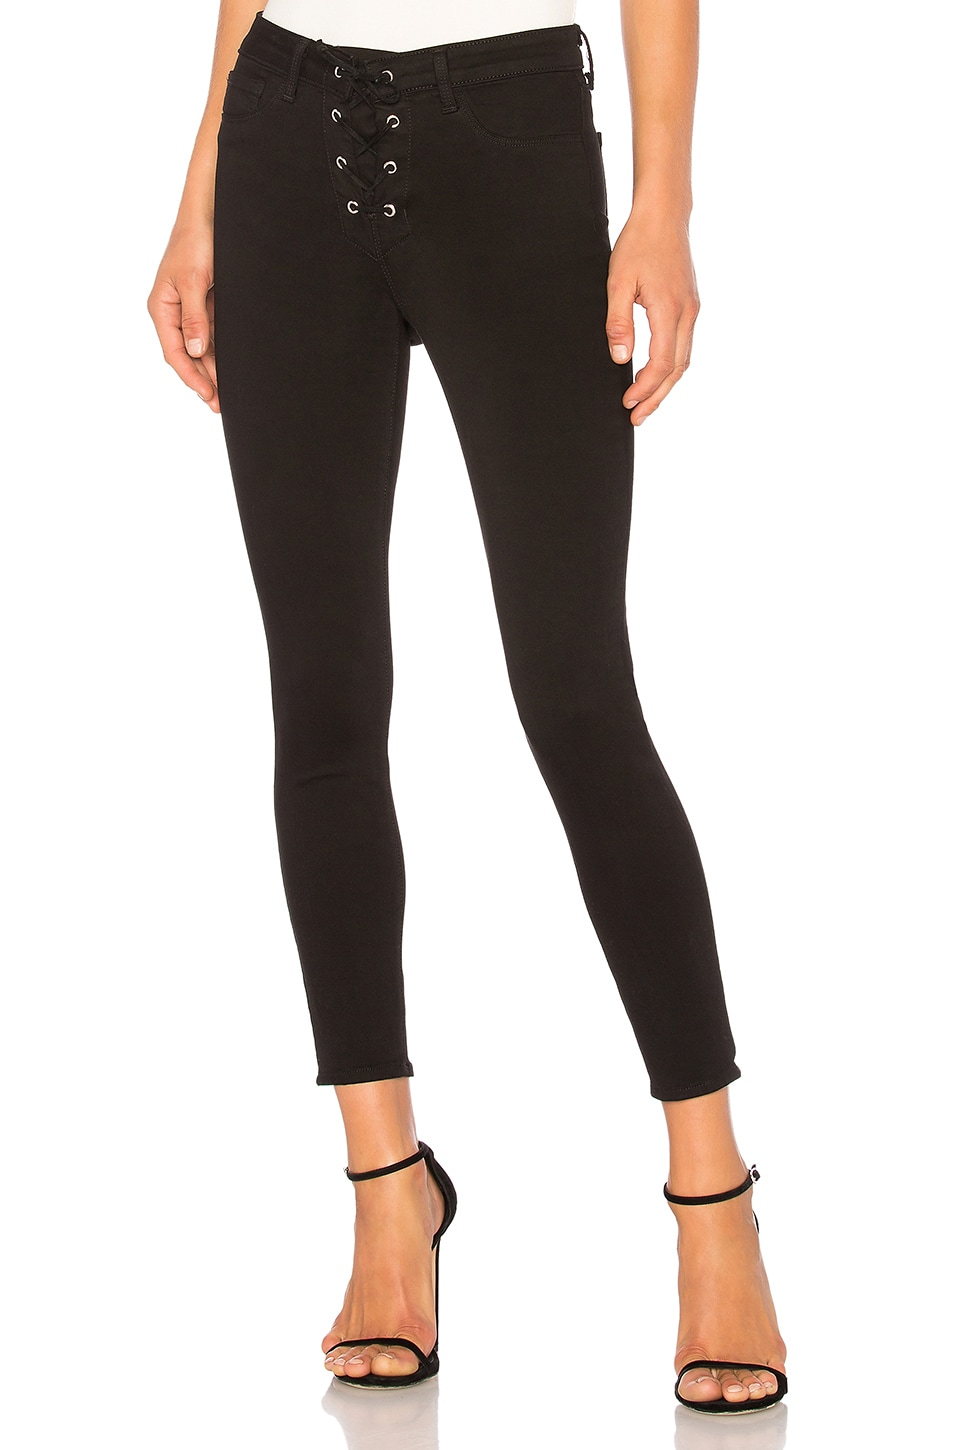 The Cherie Lace-up Skinny